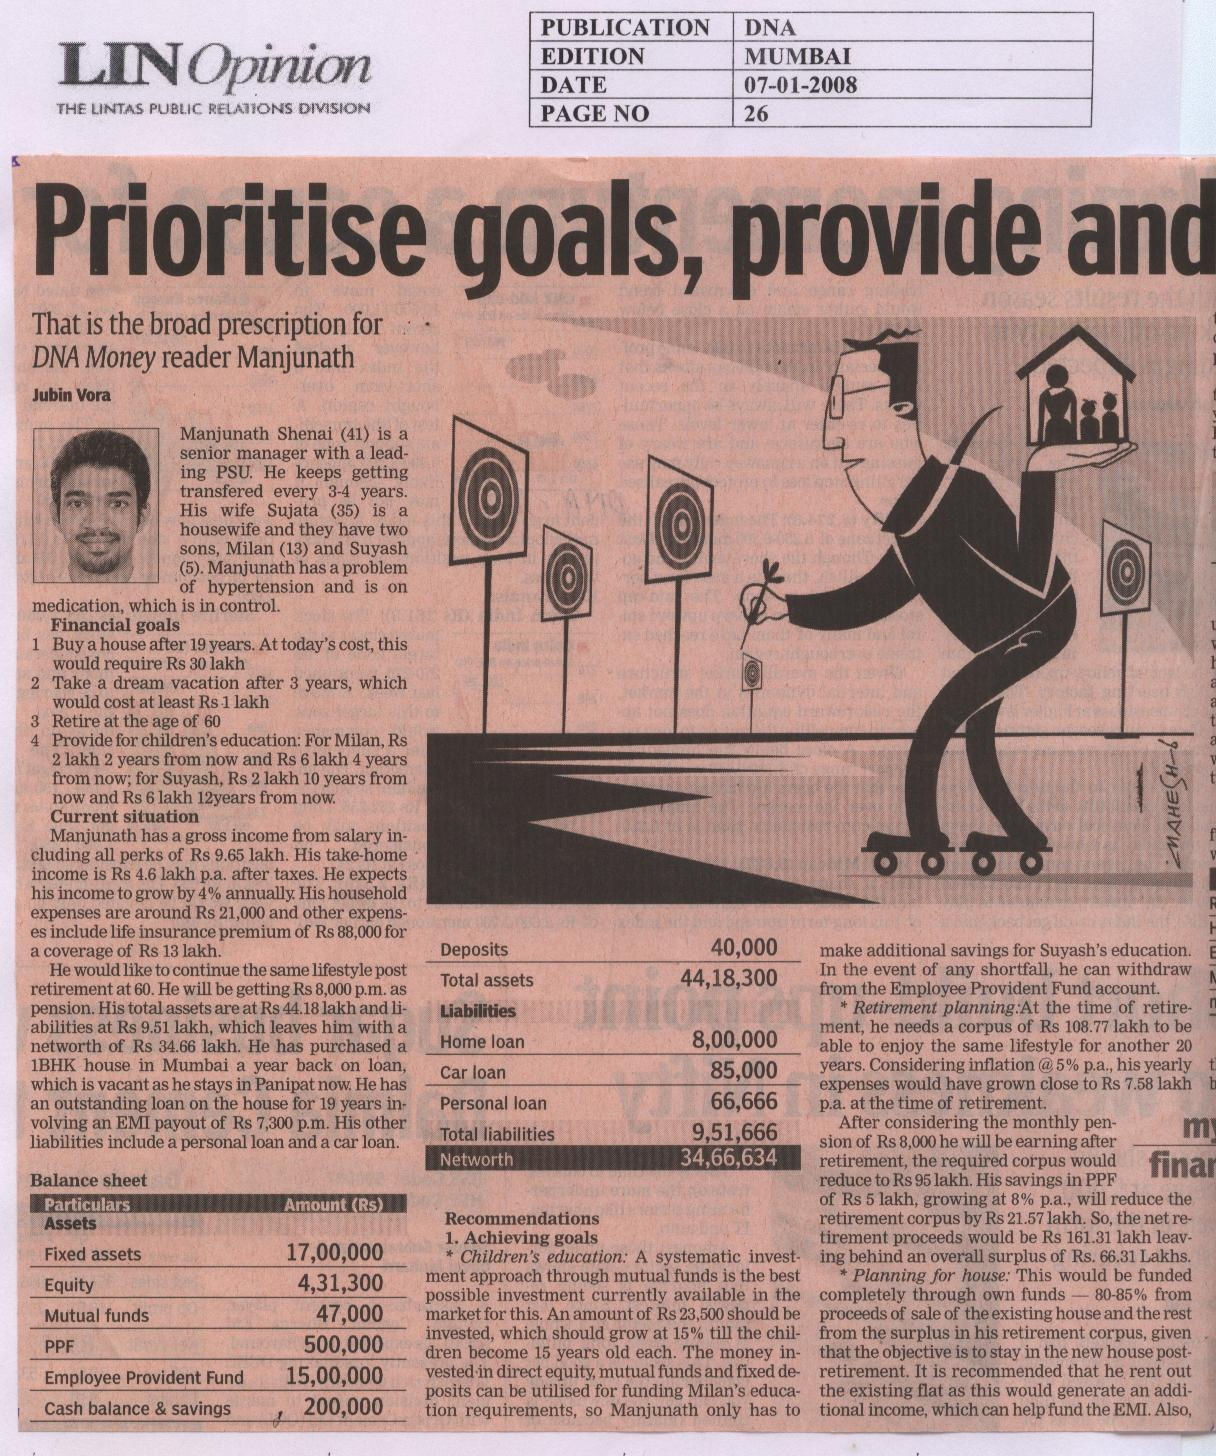 Tuesday November 04 2008 337 PM 1326000 DNA Money Mumbai February 25 Pg 30JPG 340 355591